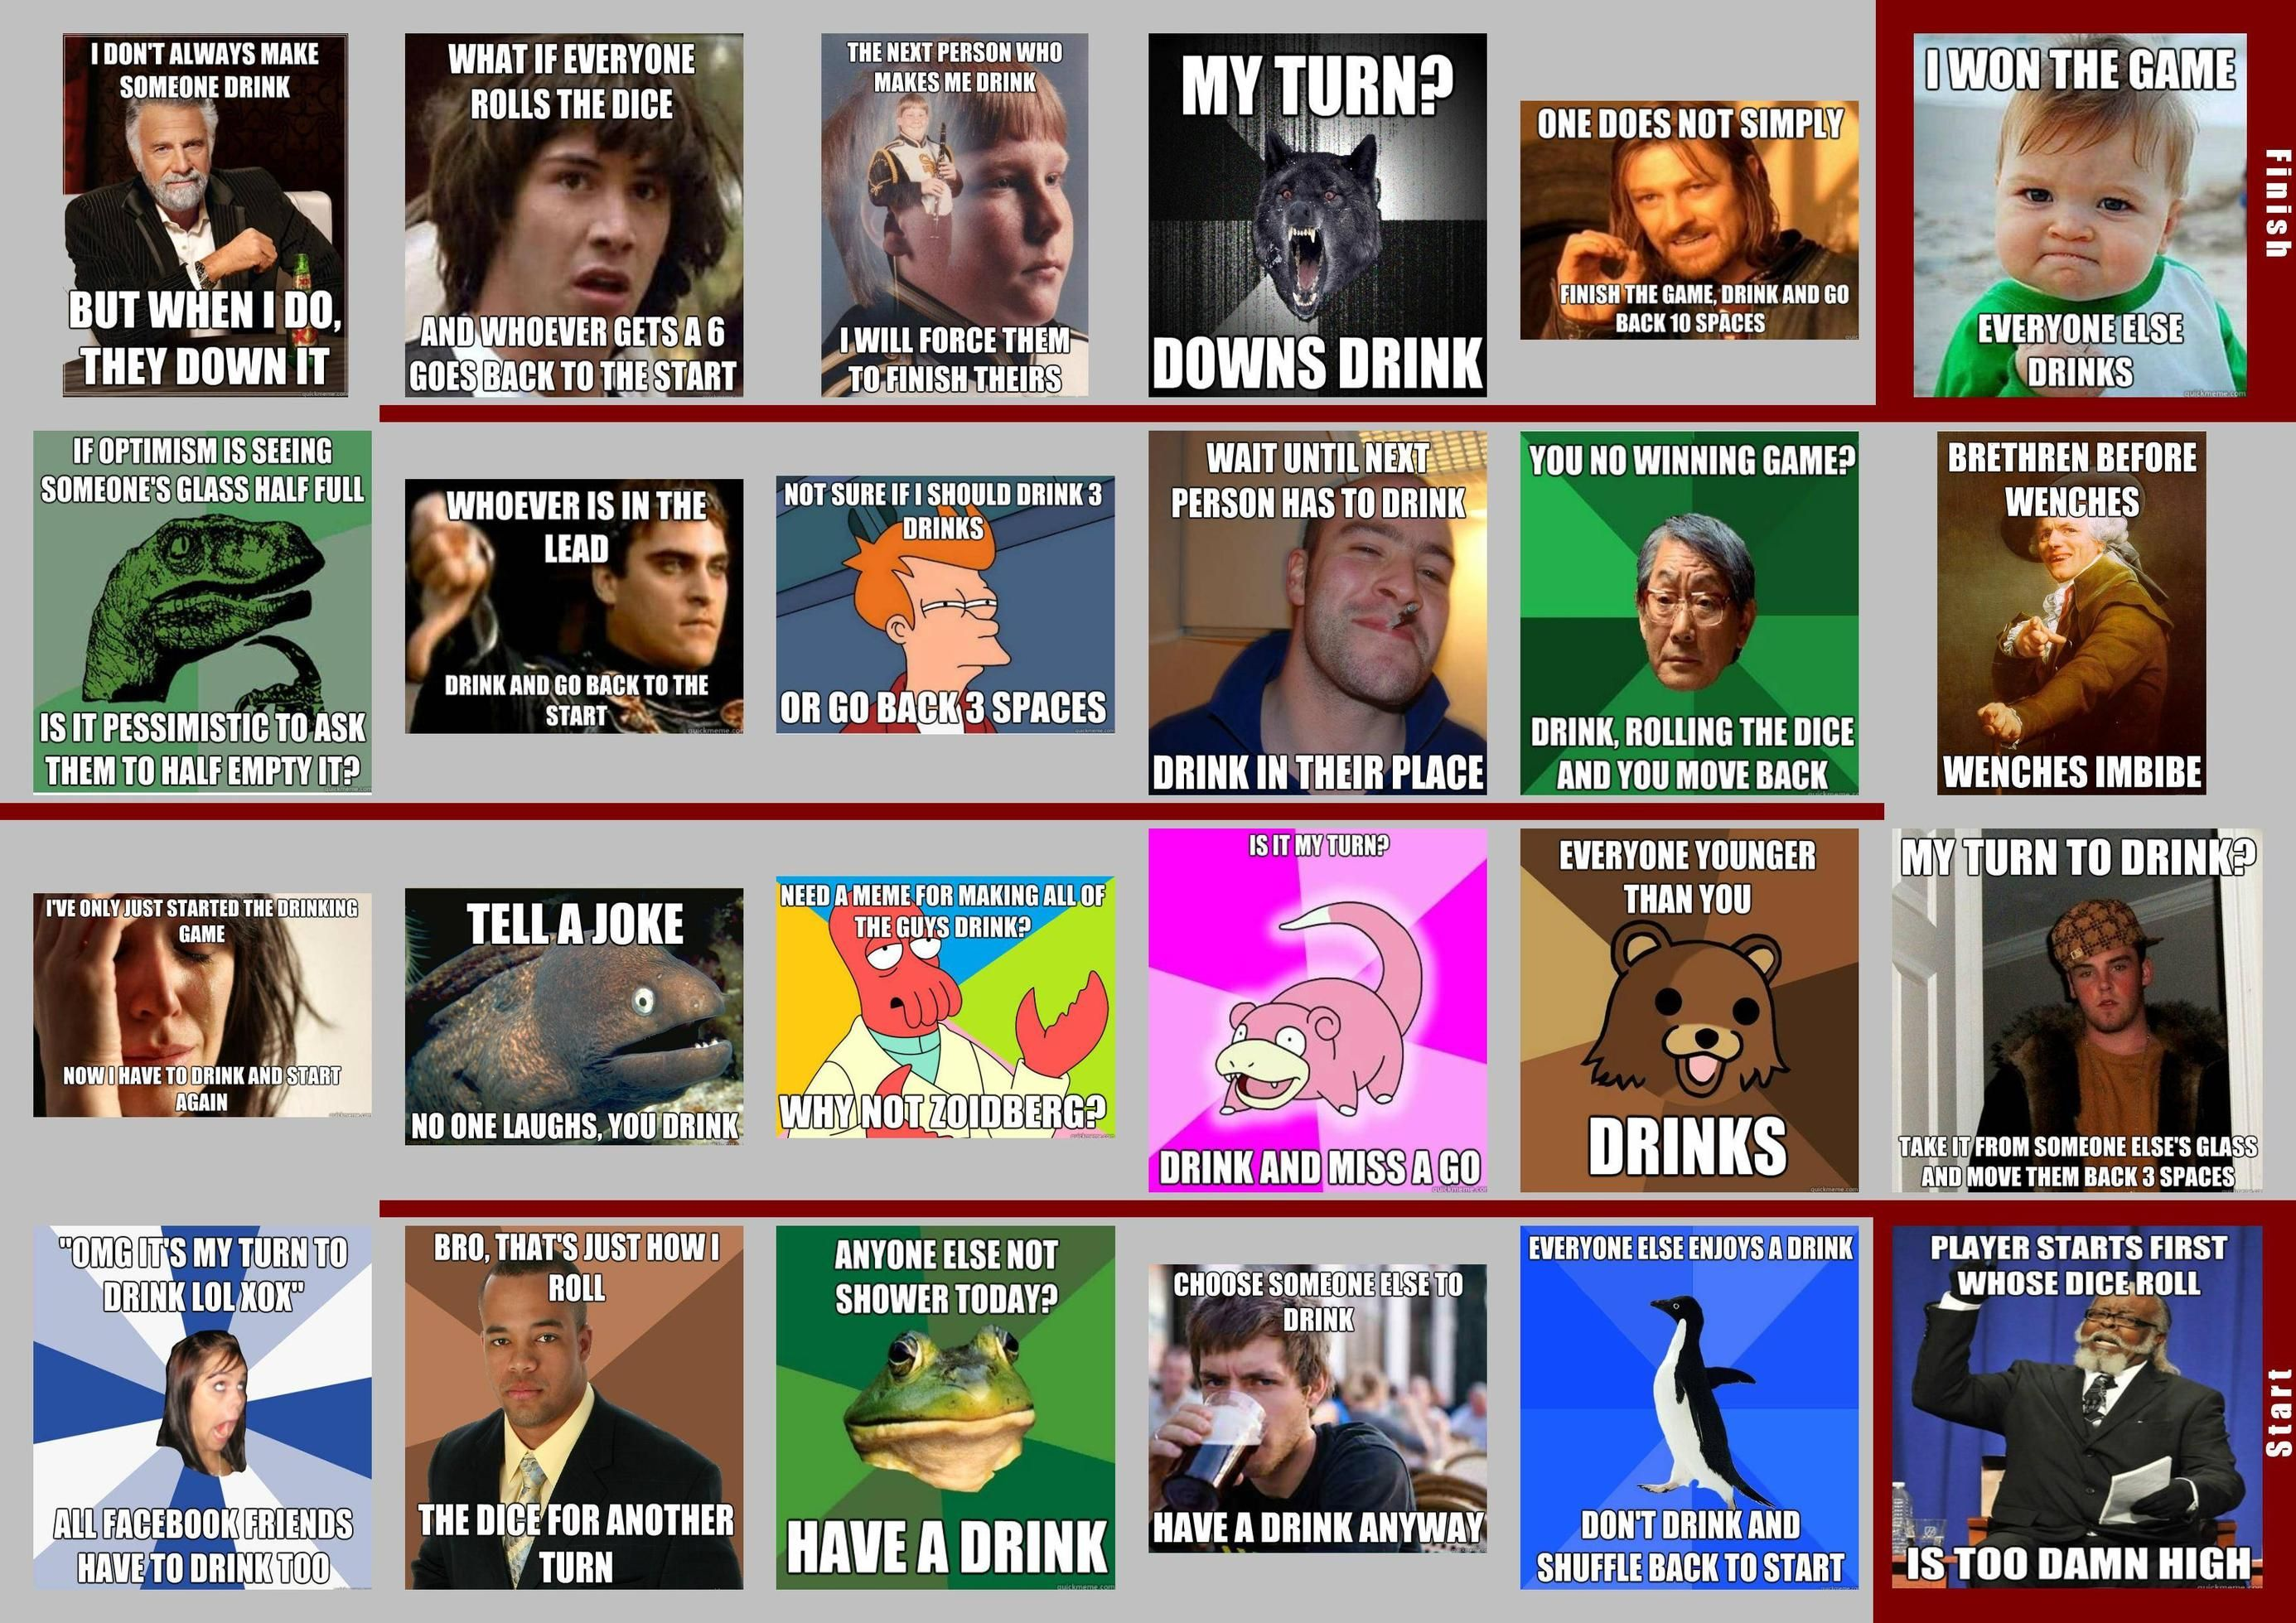 Funny Meme Games For Facebook : New drinking board game uses memes as spaces drinking games